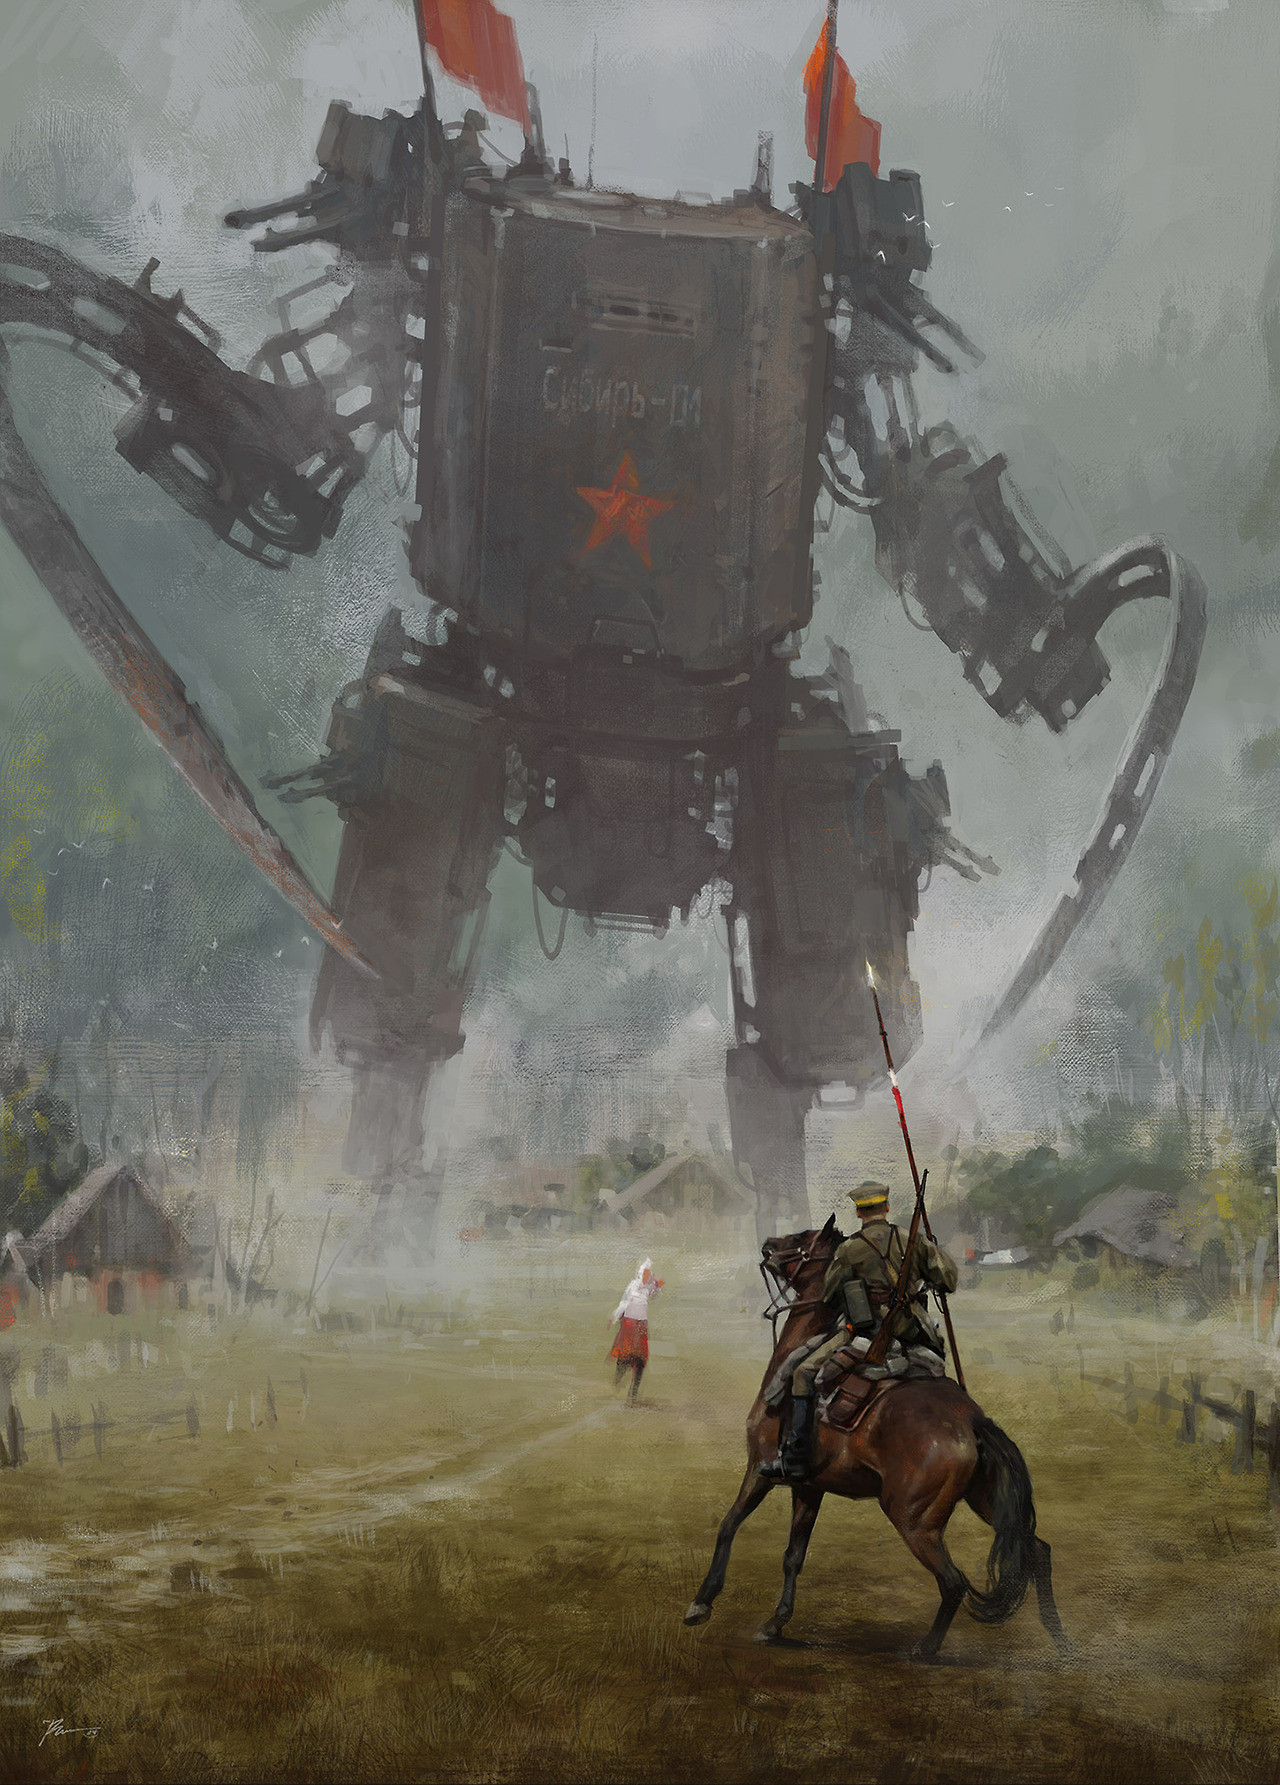 jakub_rozalski_oil_paintings_mechs_060115_3